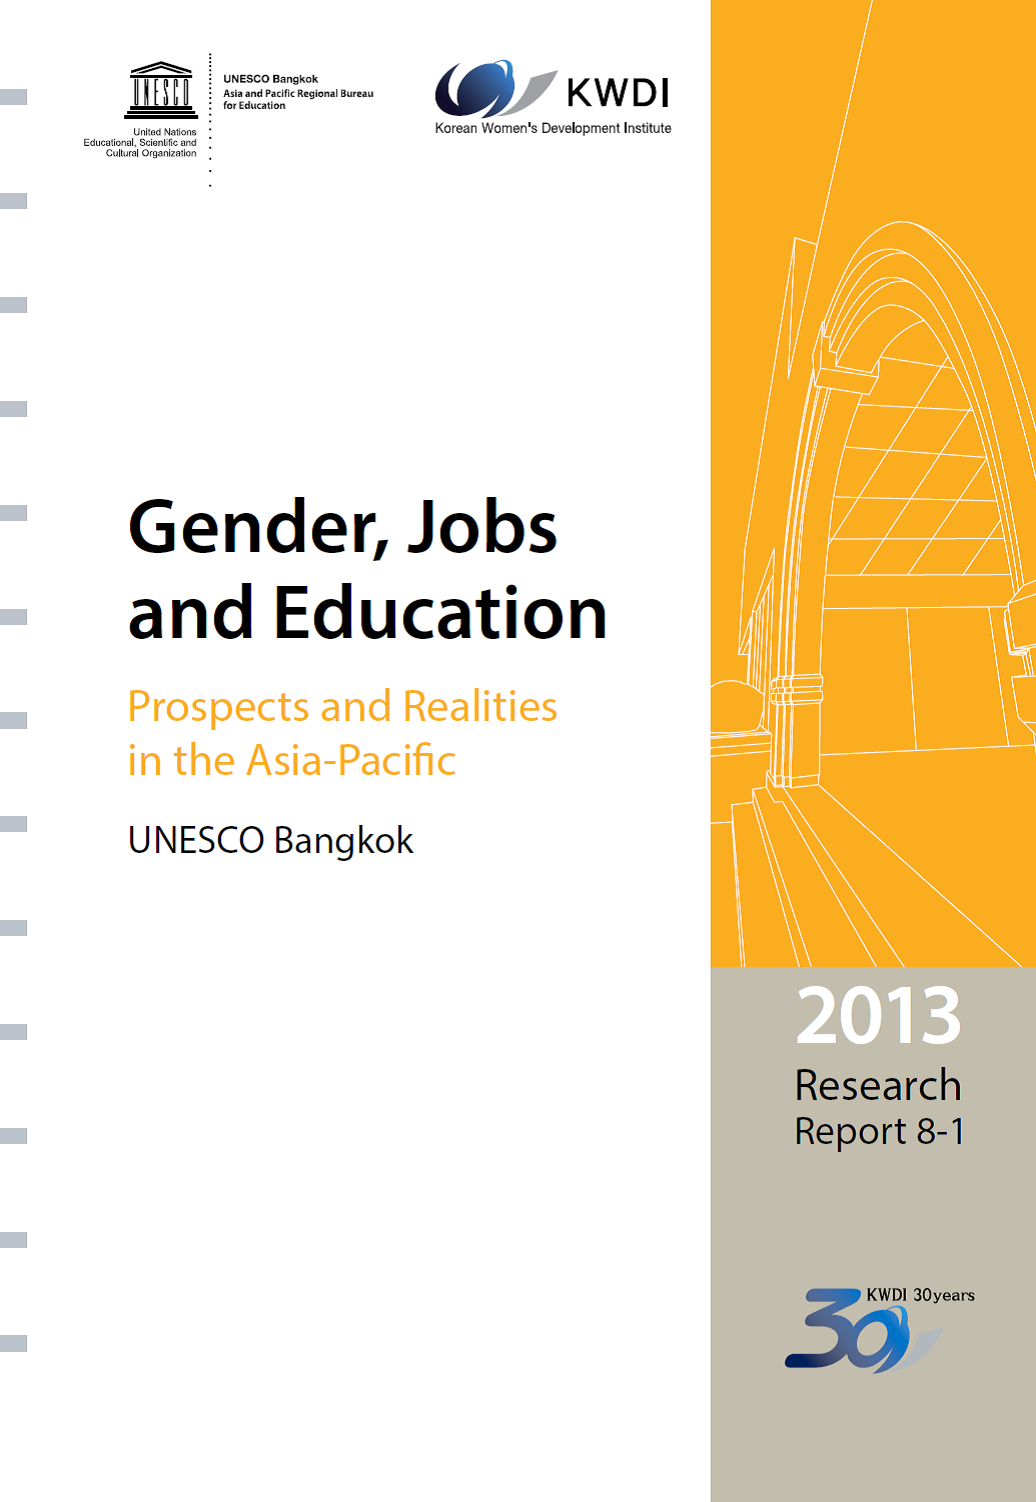 Gender, Jobs and Education: Prospects and Realities in the Asia-Pacific